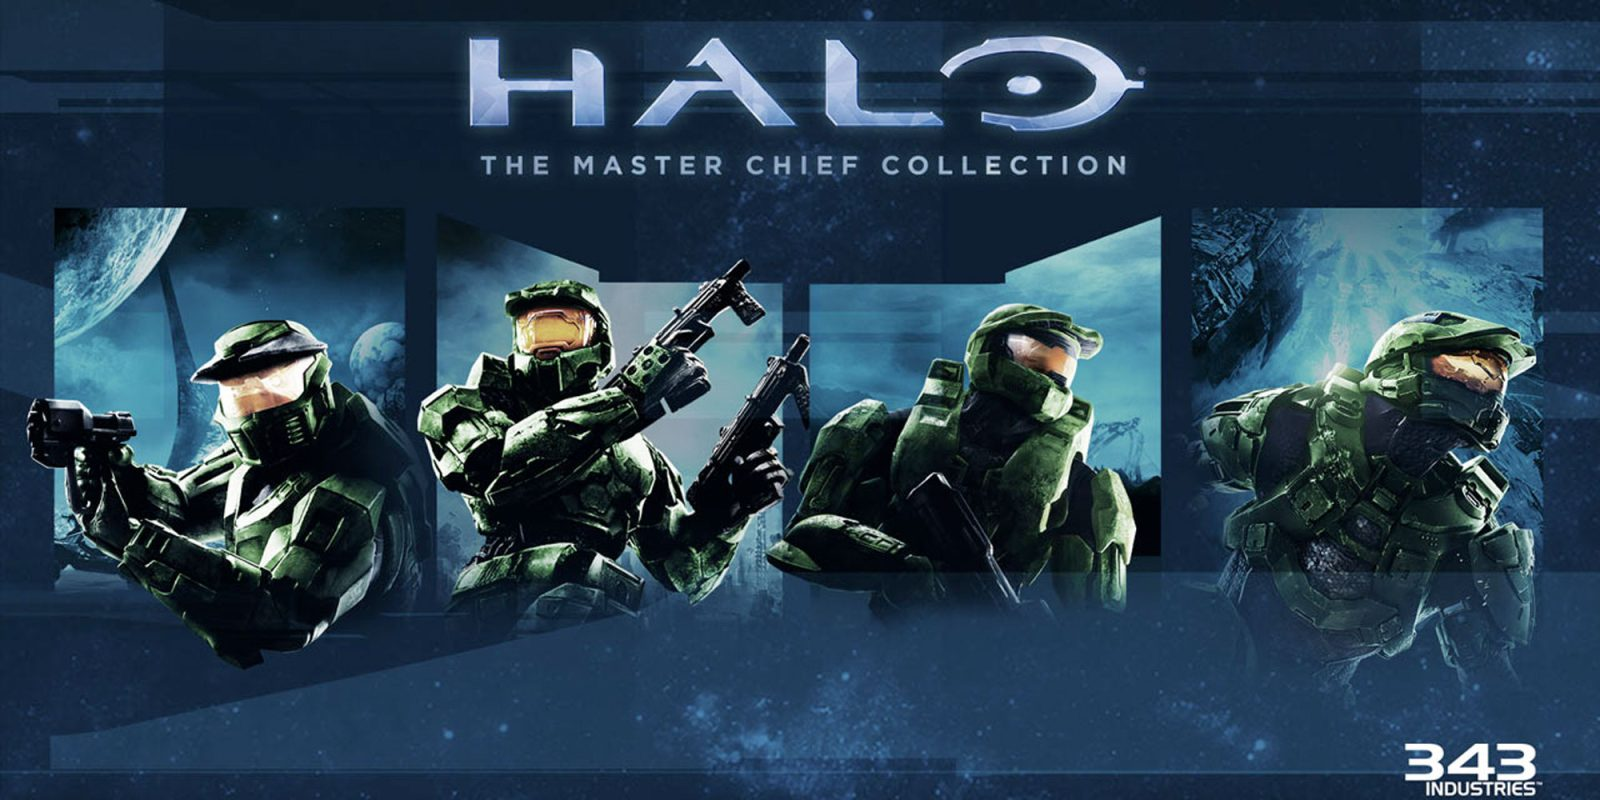 Halo The Master Chief Collection Is Coming To Pc 9to5toys